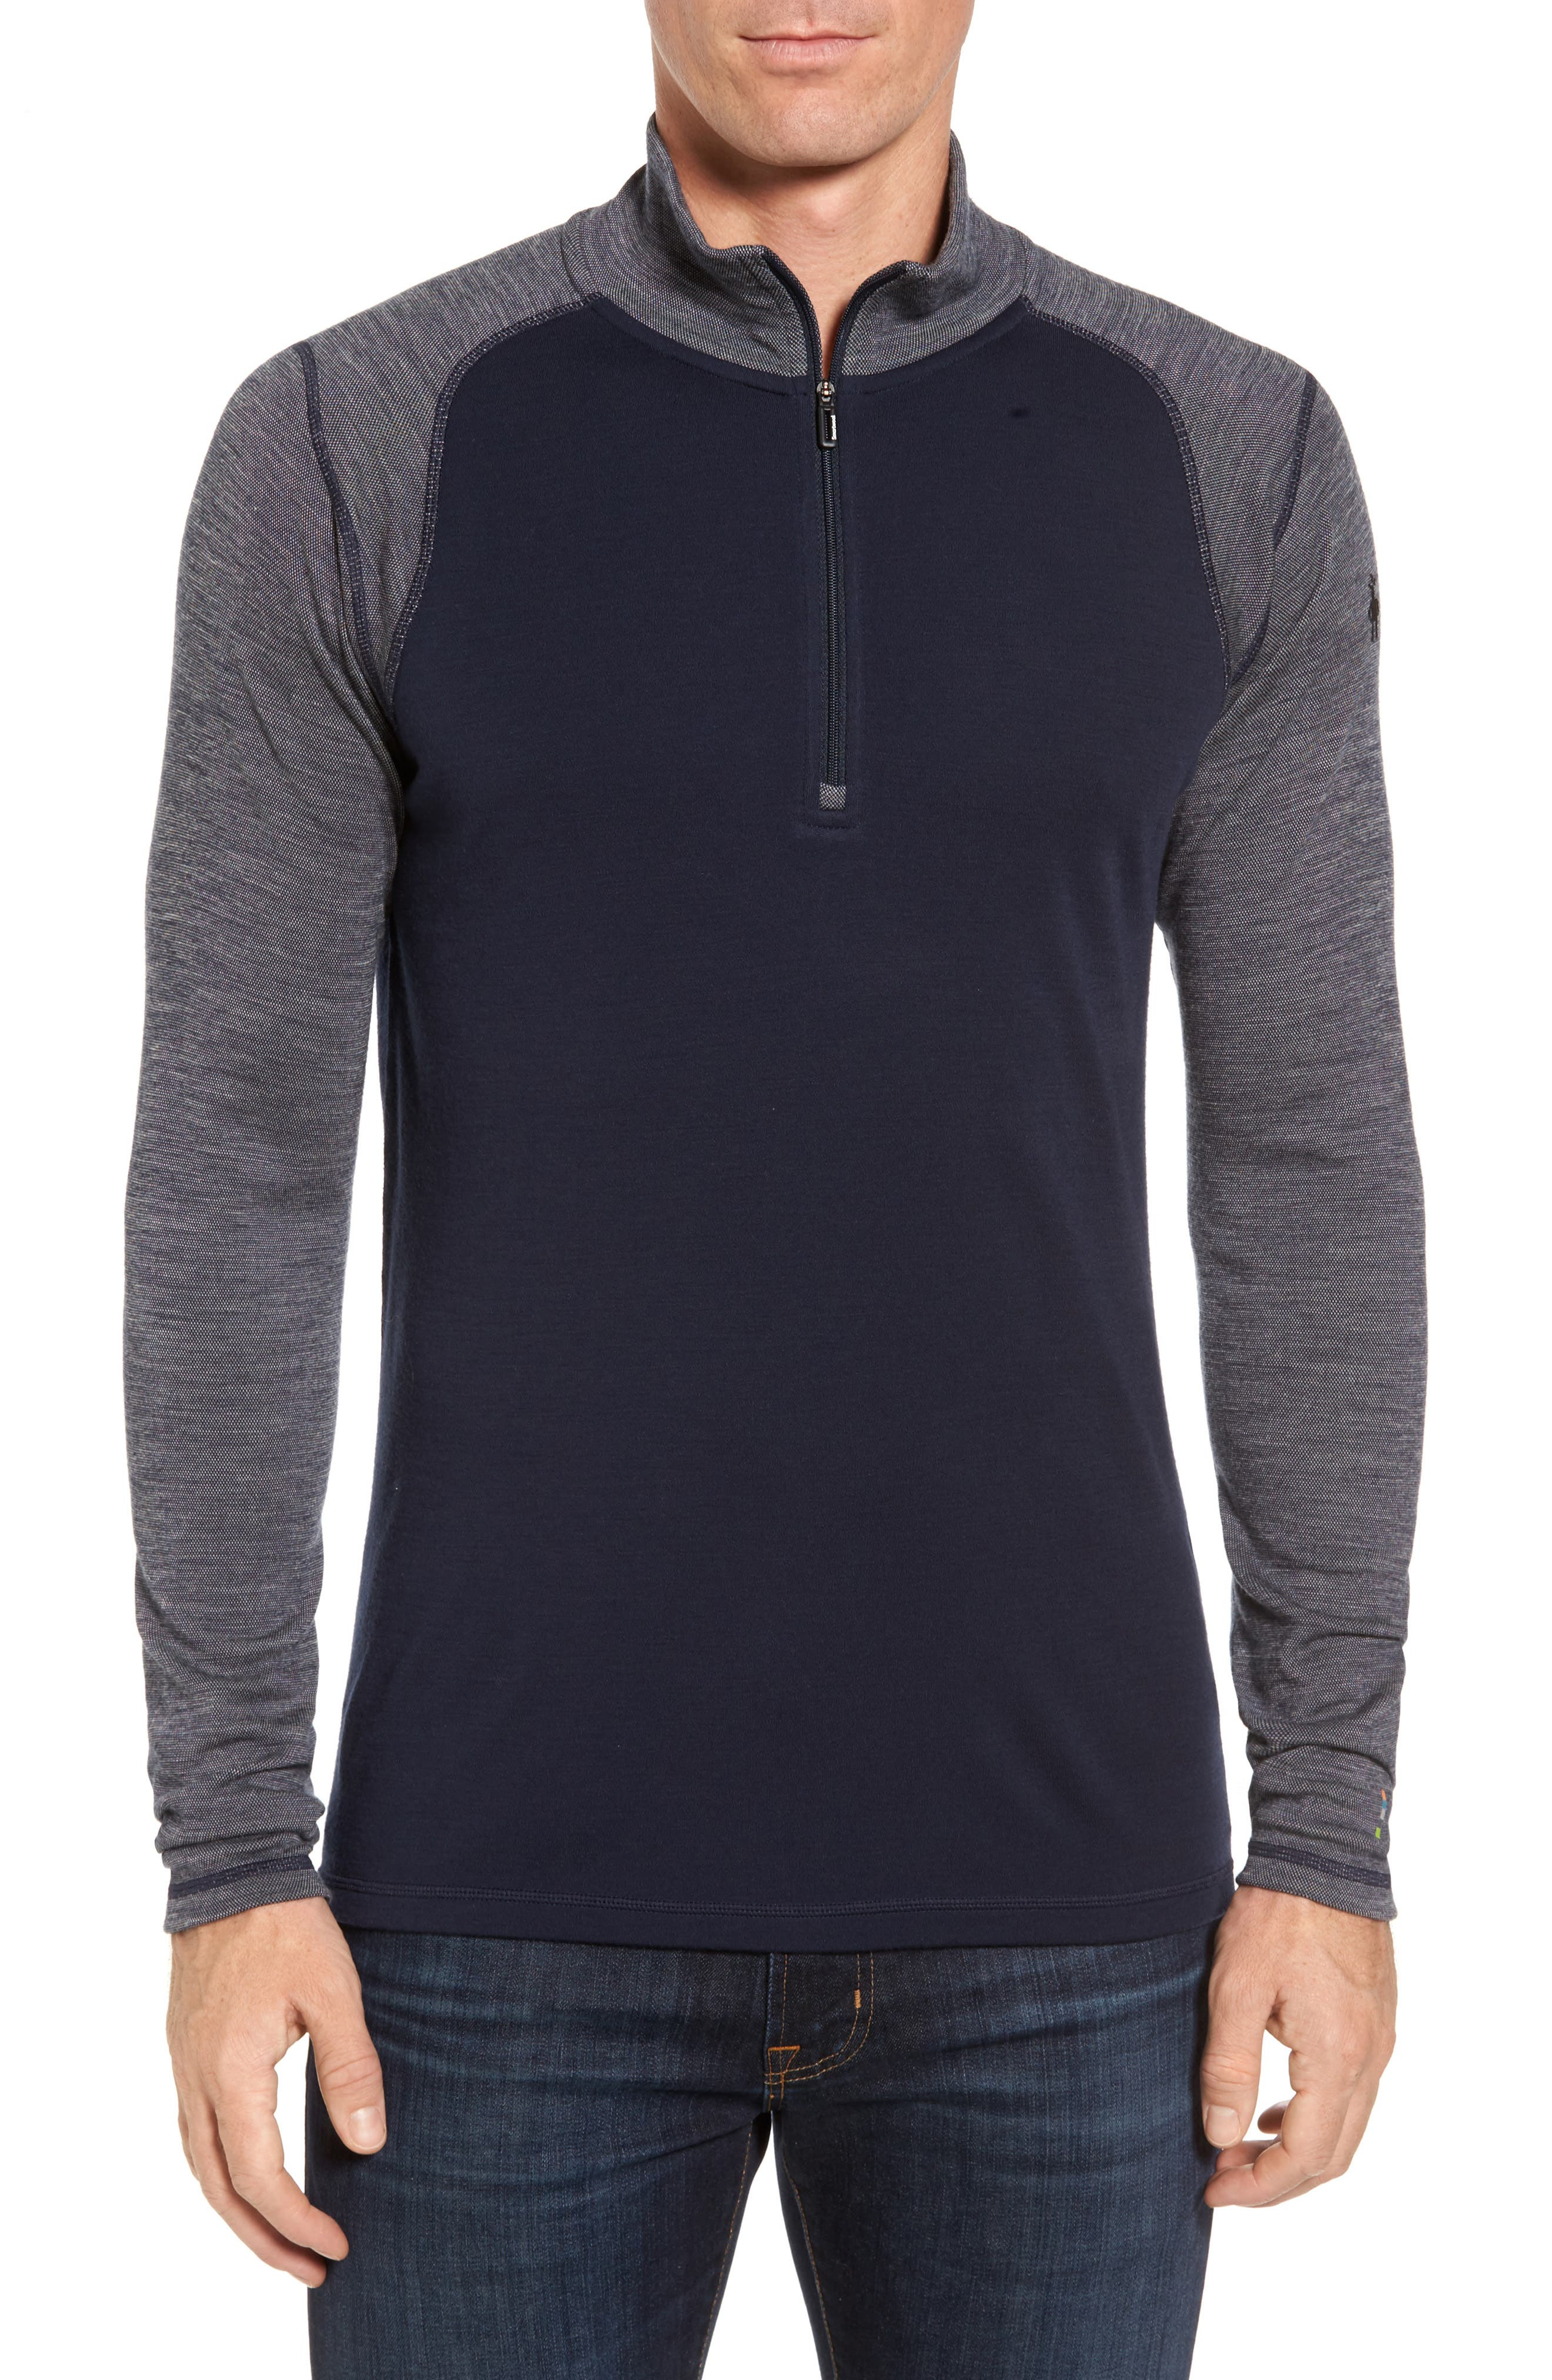 Merino 250 Base Layer Pattern Quarter Zip Pullover,                             Main thumbnail 1, color,                             410